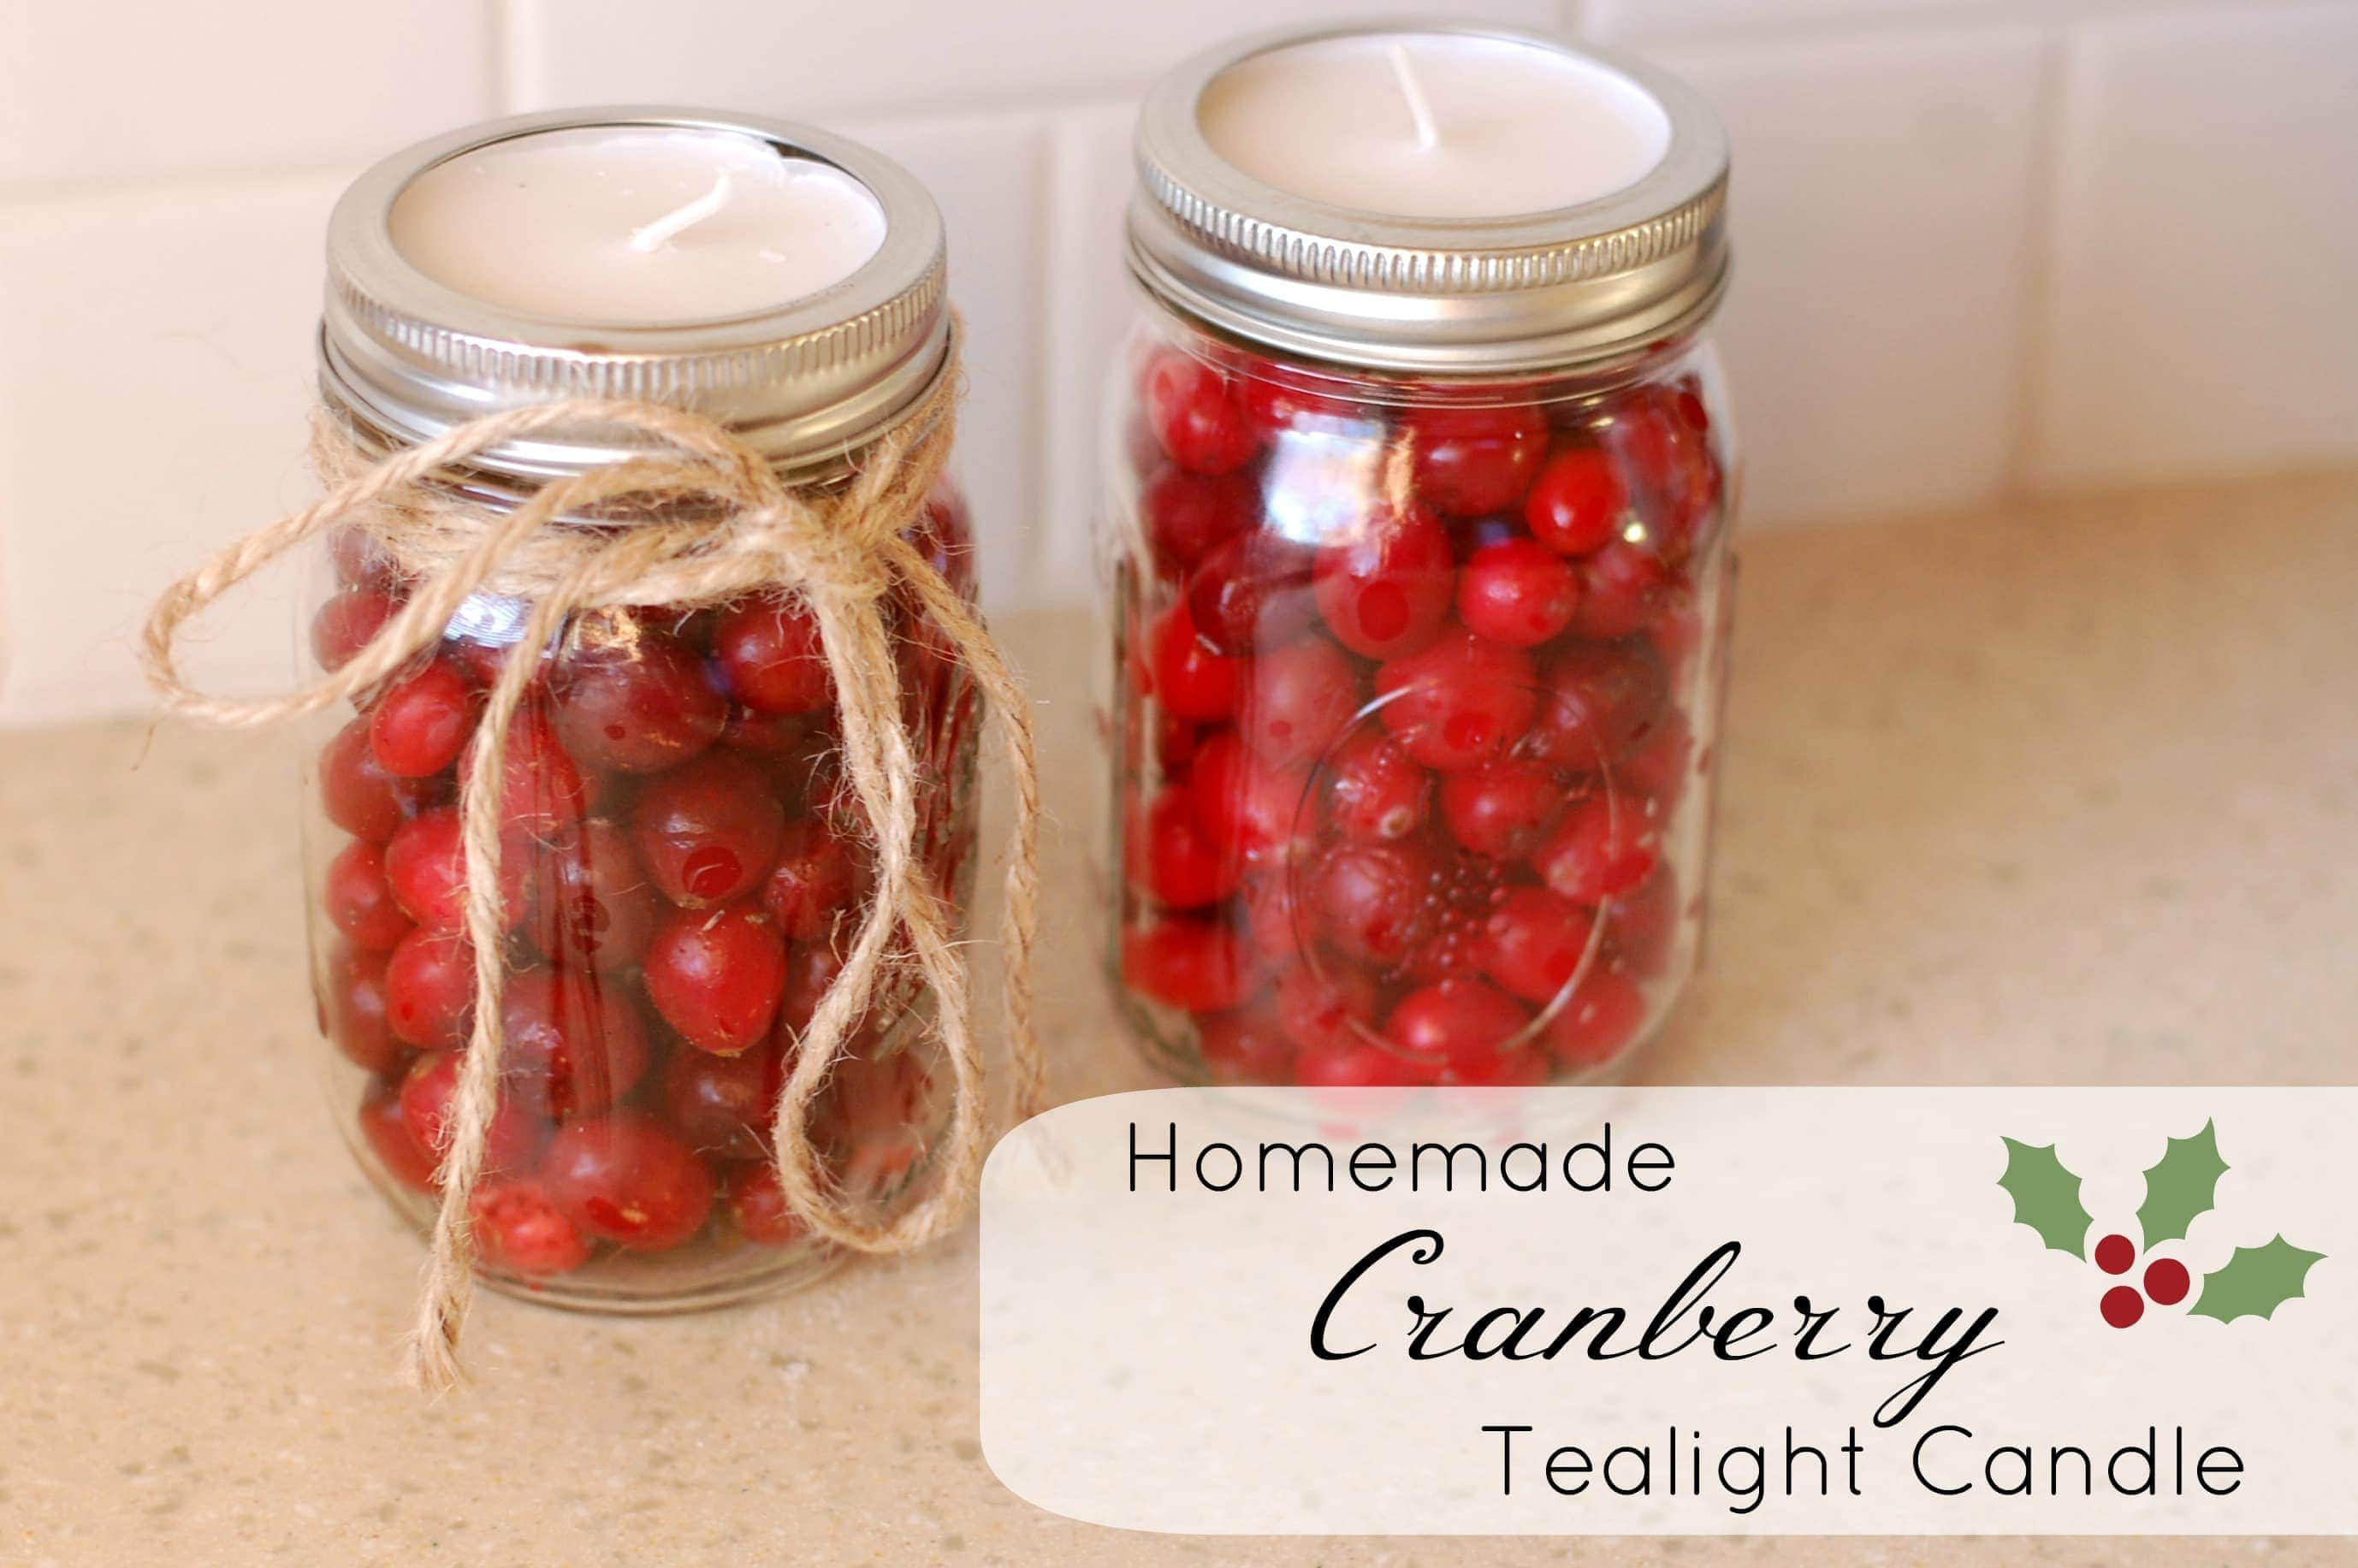 Homemade cranberry candles for Christmas candle gift ideas